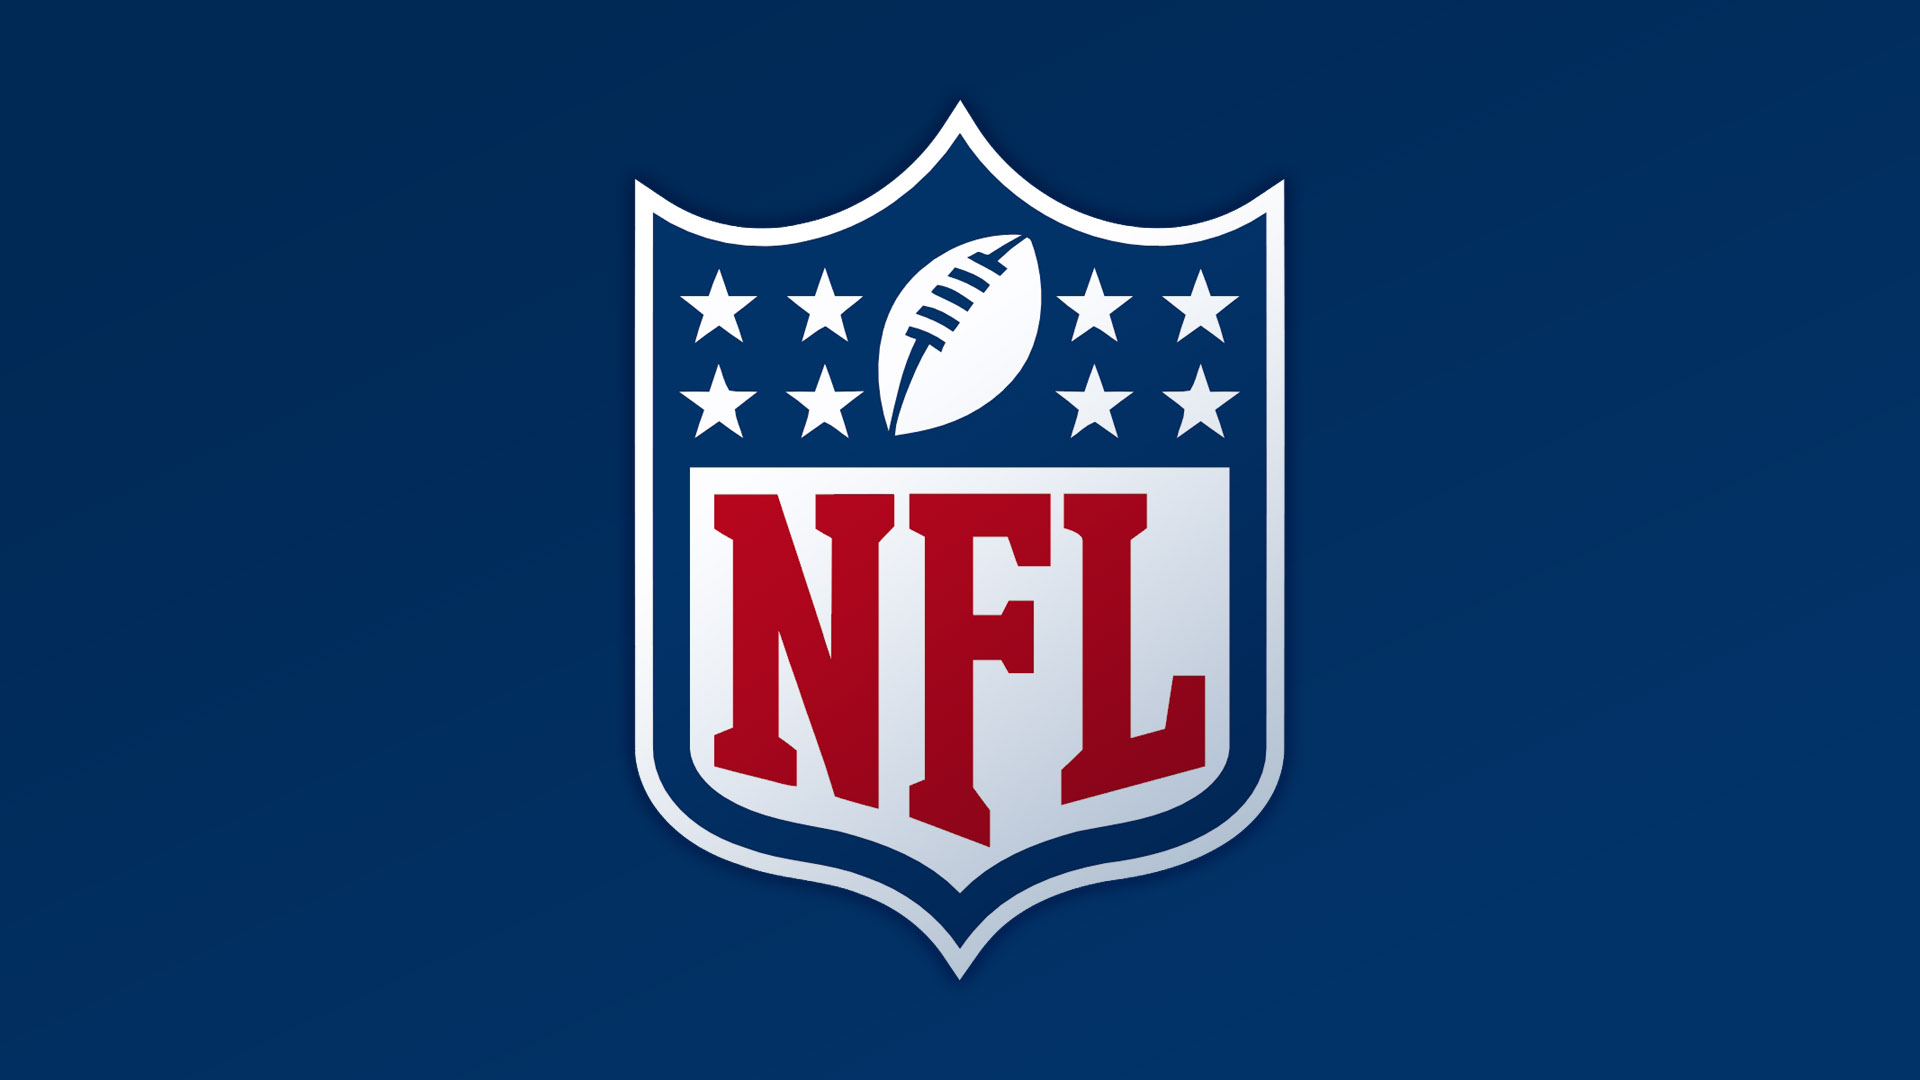 NFL Wallpapers Free  Wallpaper  1920x1080